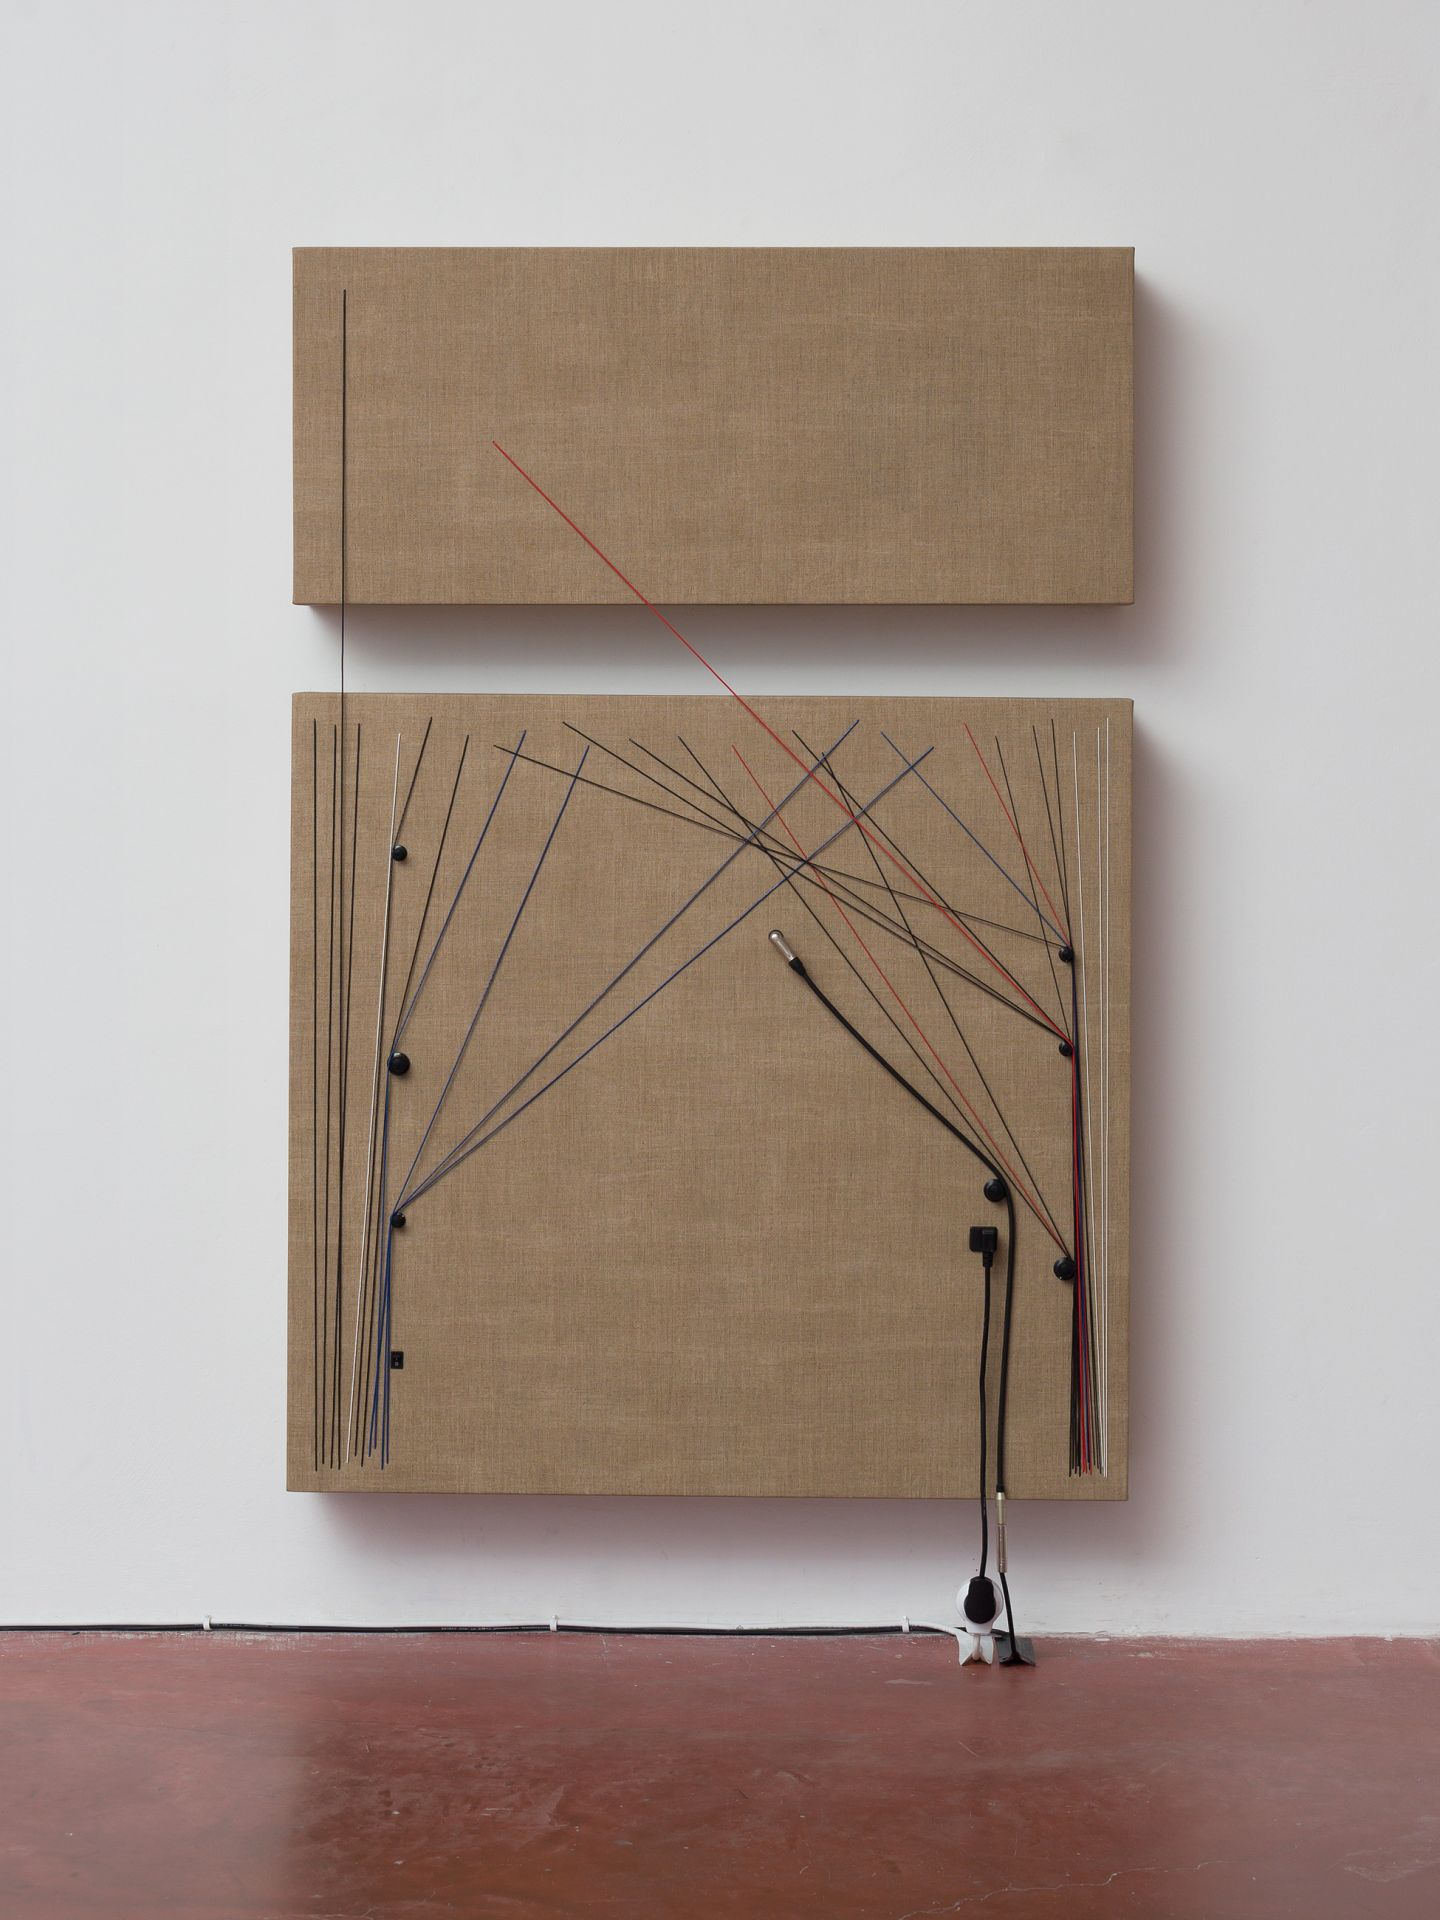 """Transition , 2016, Wood, canvas, electronics, cables, knobs, speakers, 60 3/5 × 40 7/10 × 6 1/2"""""""